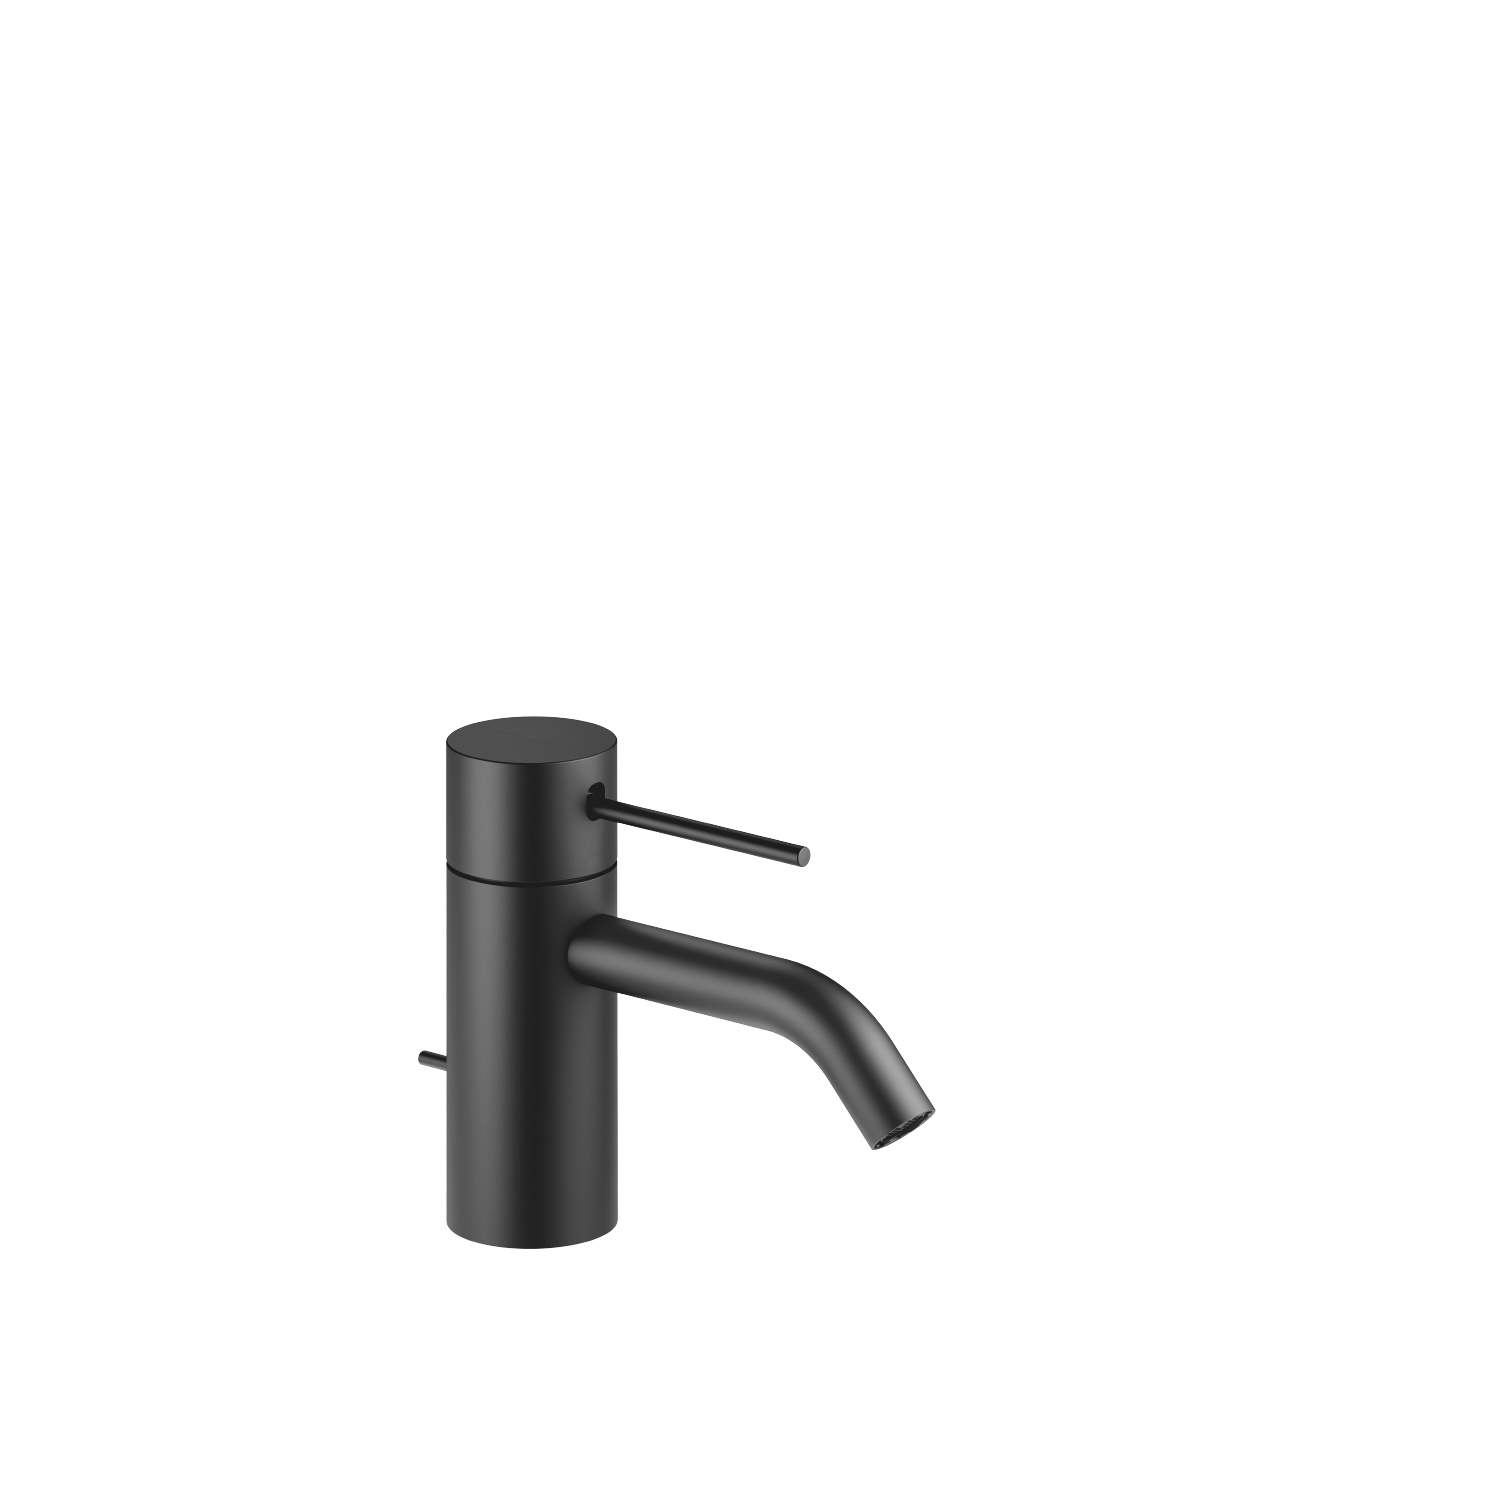 META SLIM Single-lever basin mixer with pop-up waste - matt black